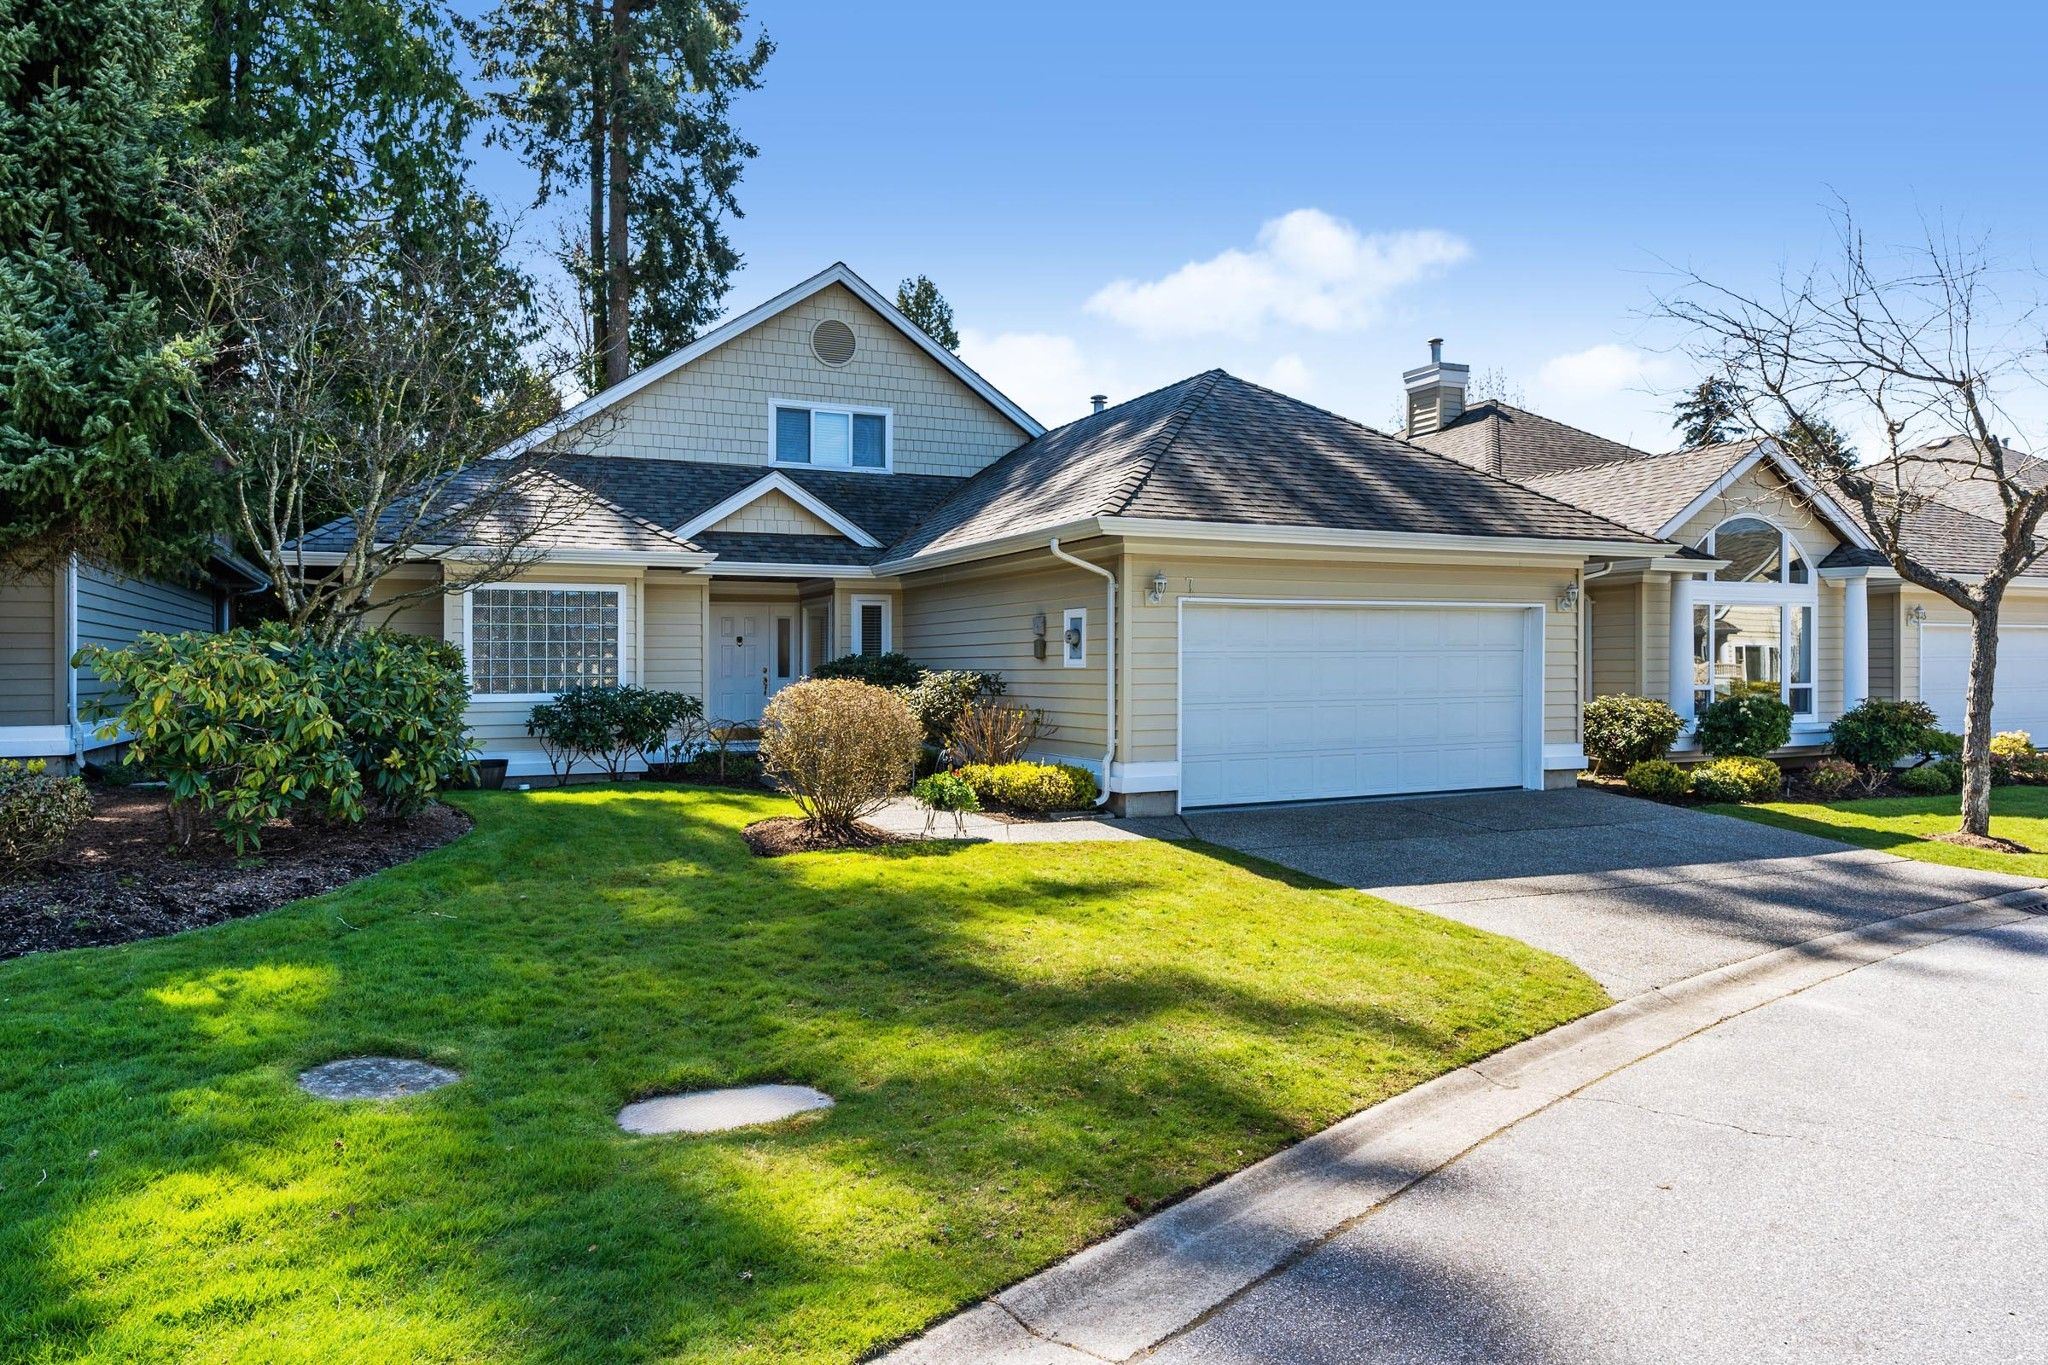 """Main Photo: 7 1881 144 Street in Surrey: Sunnyside Park Surrey Townhouse for sale in """"BRAMBLEY HEDGE"""" (South Surrey White Rock)  : MLS®# R2564966"""